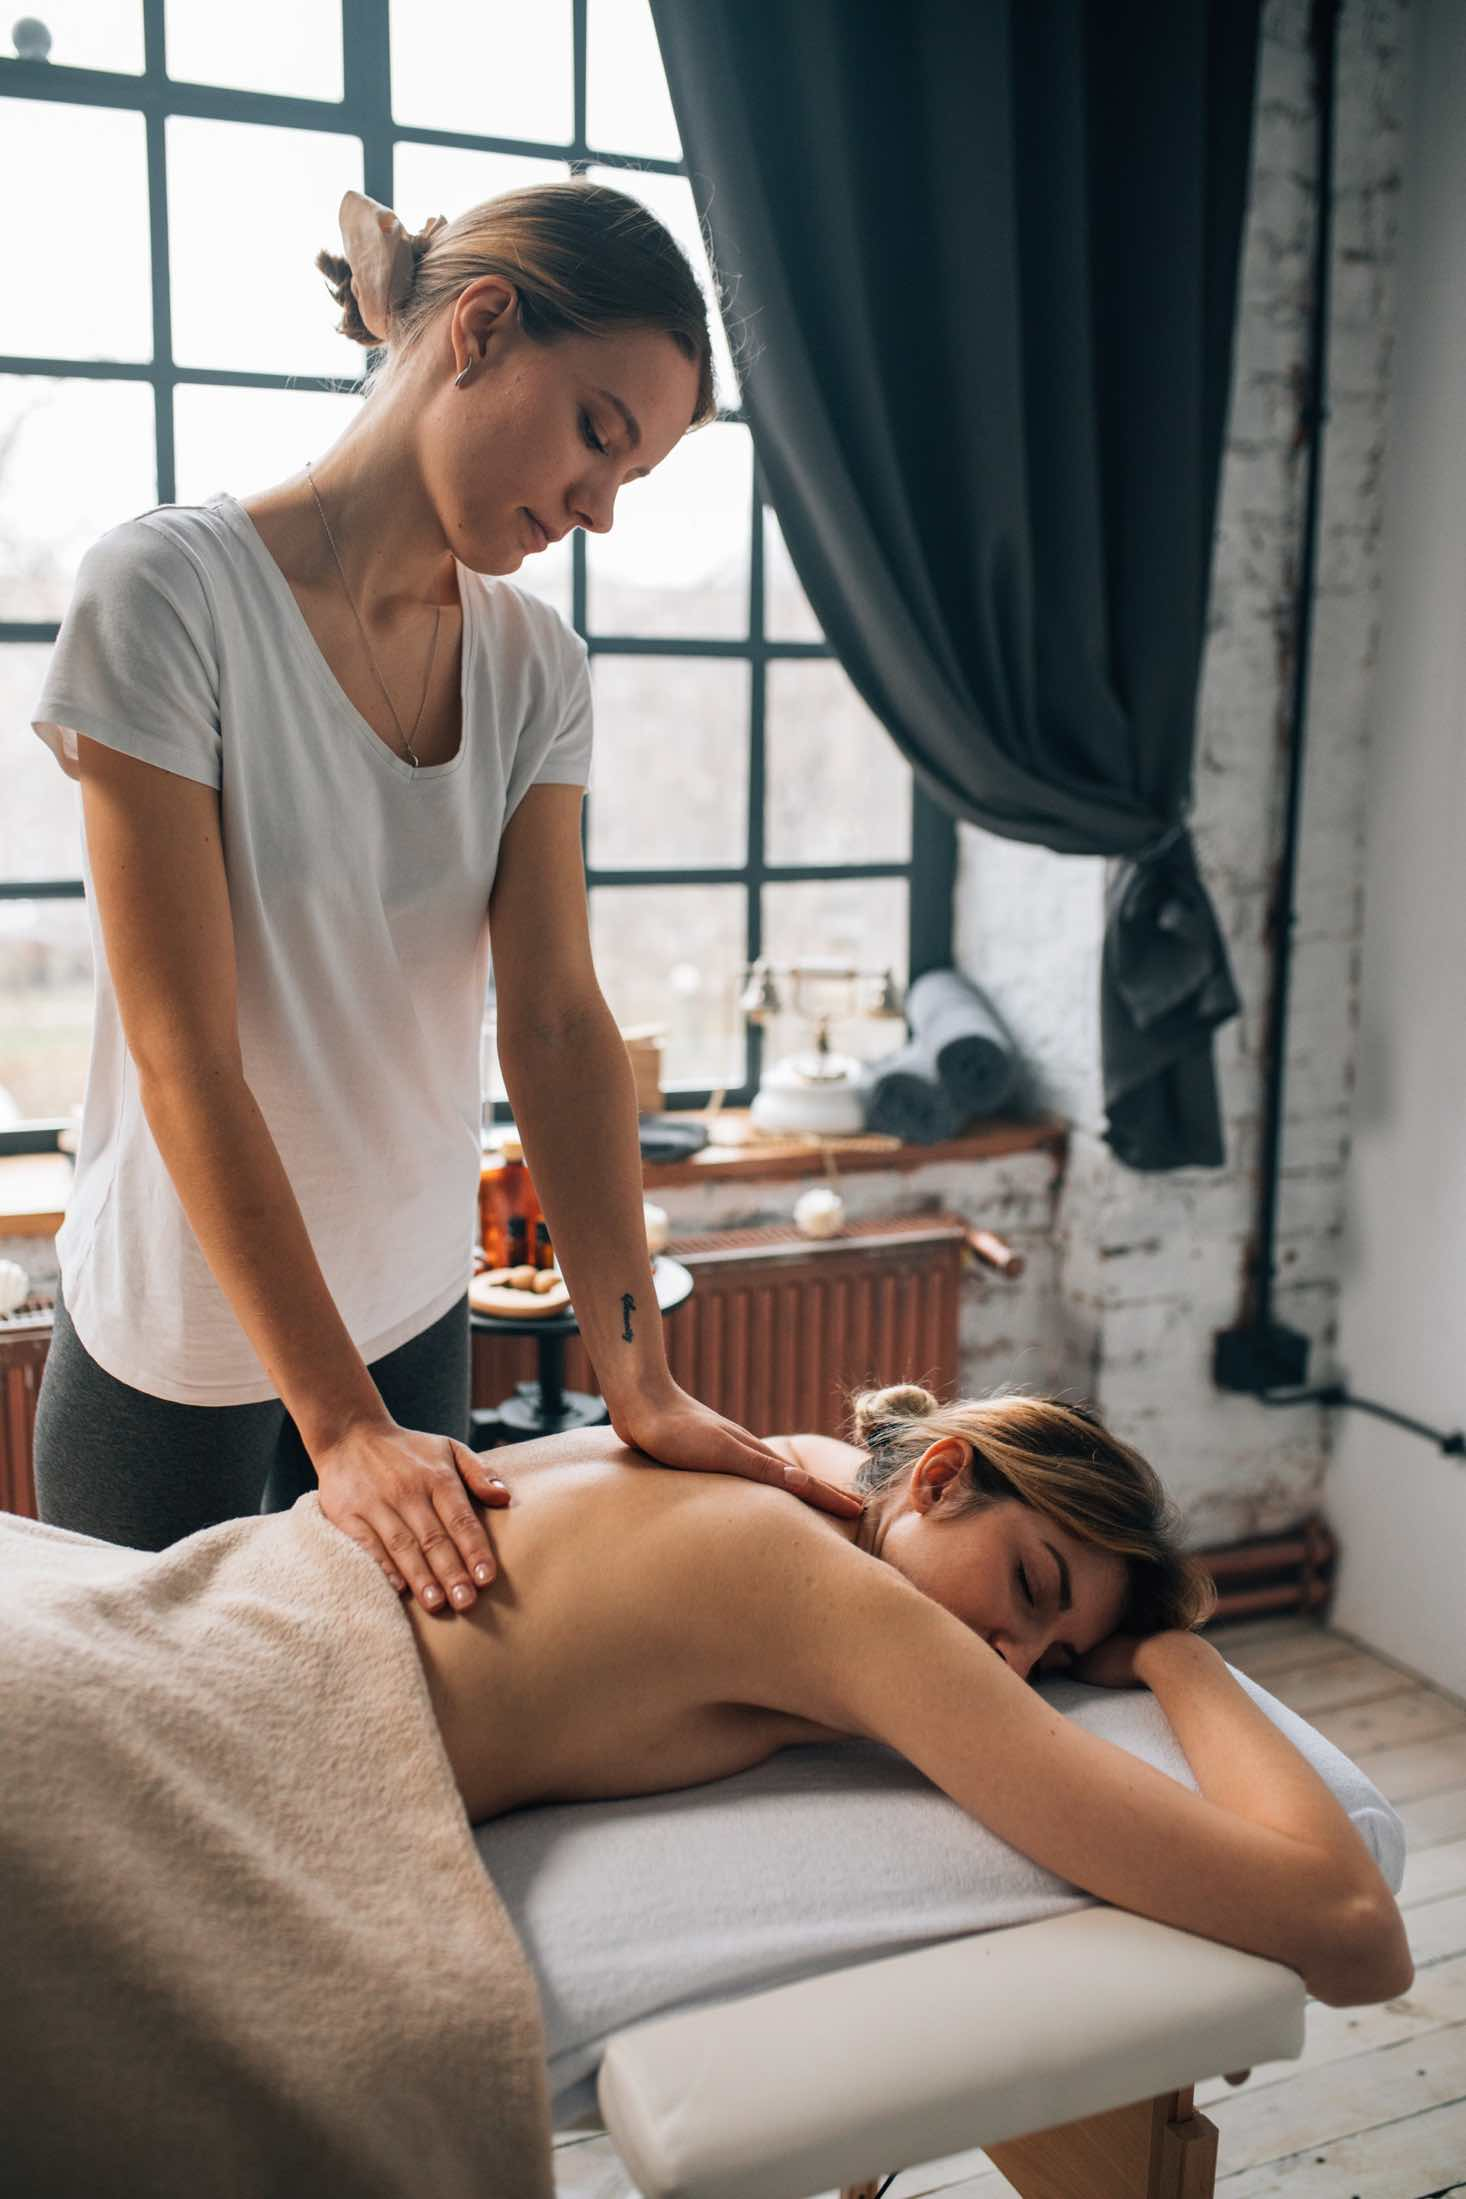 What are the benefits of a lymphatic drainage massage?